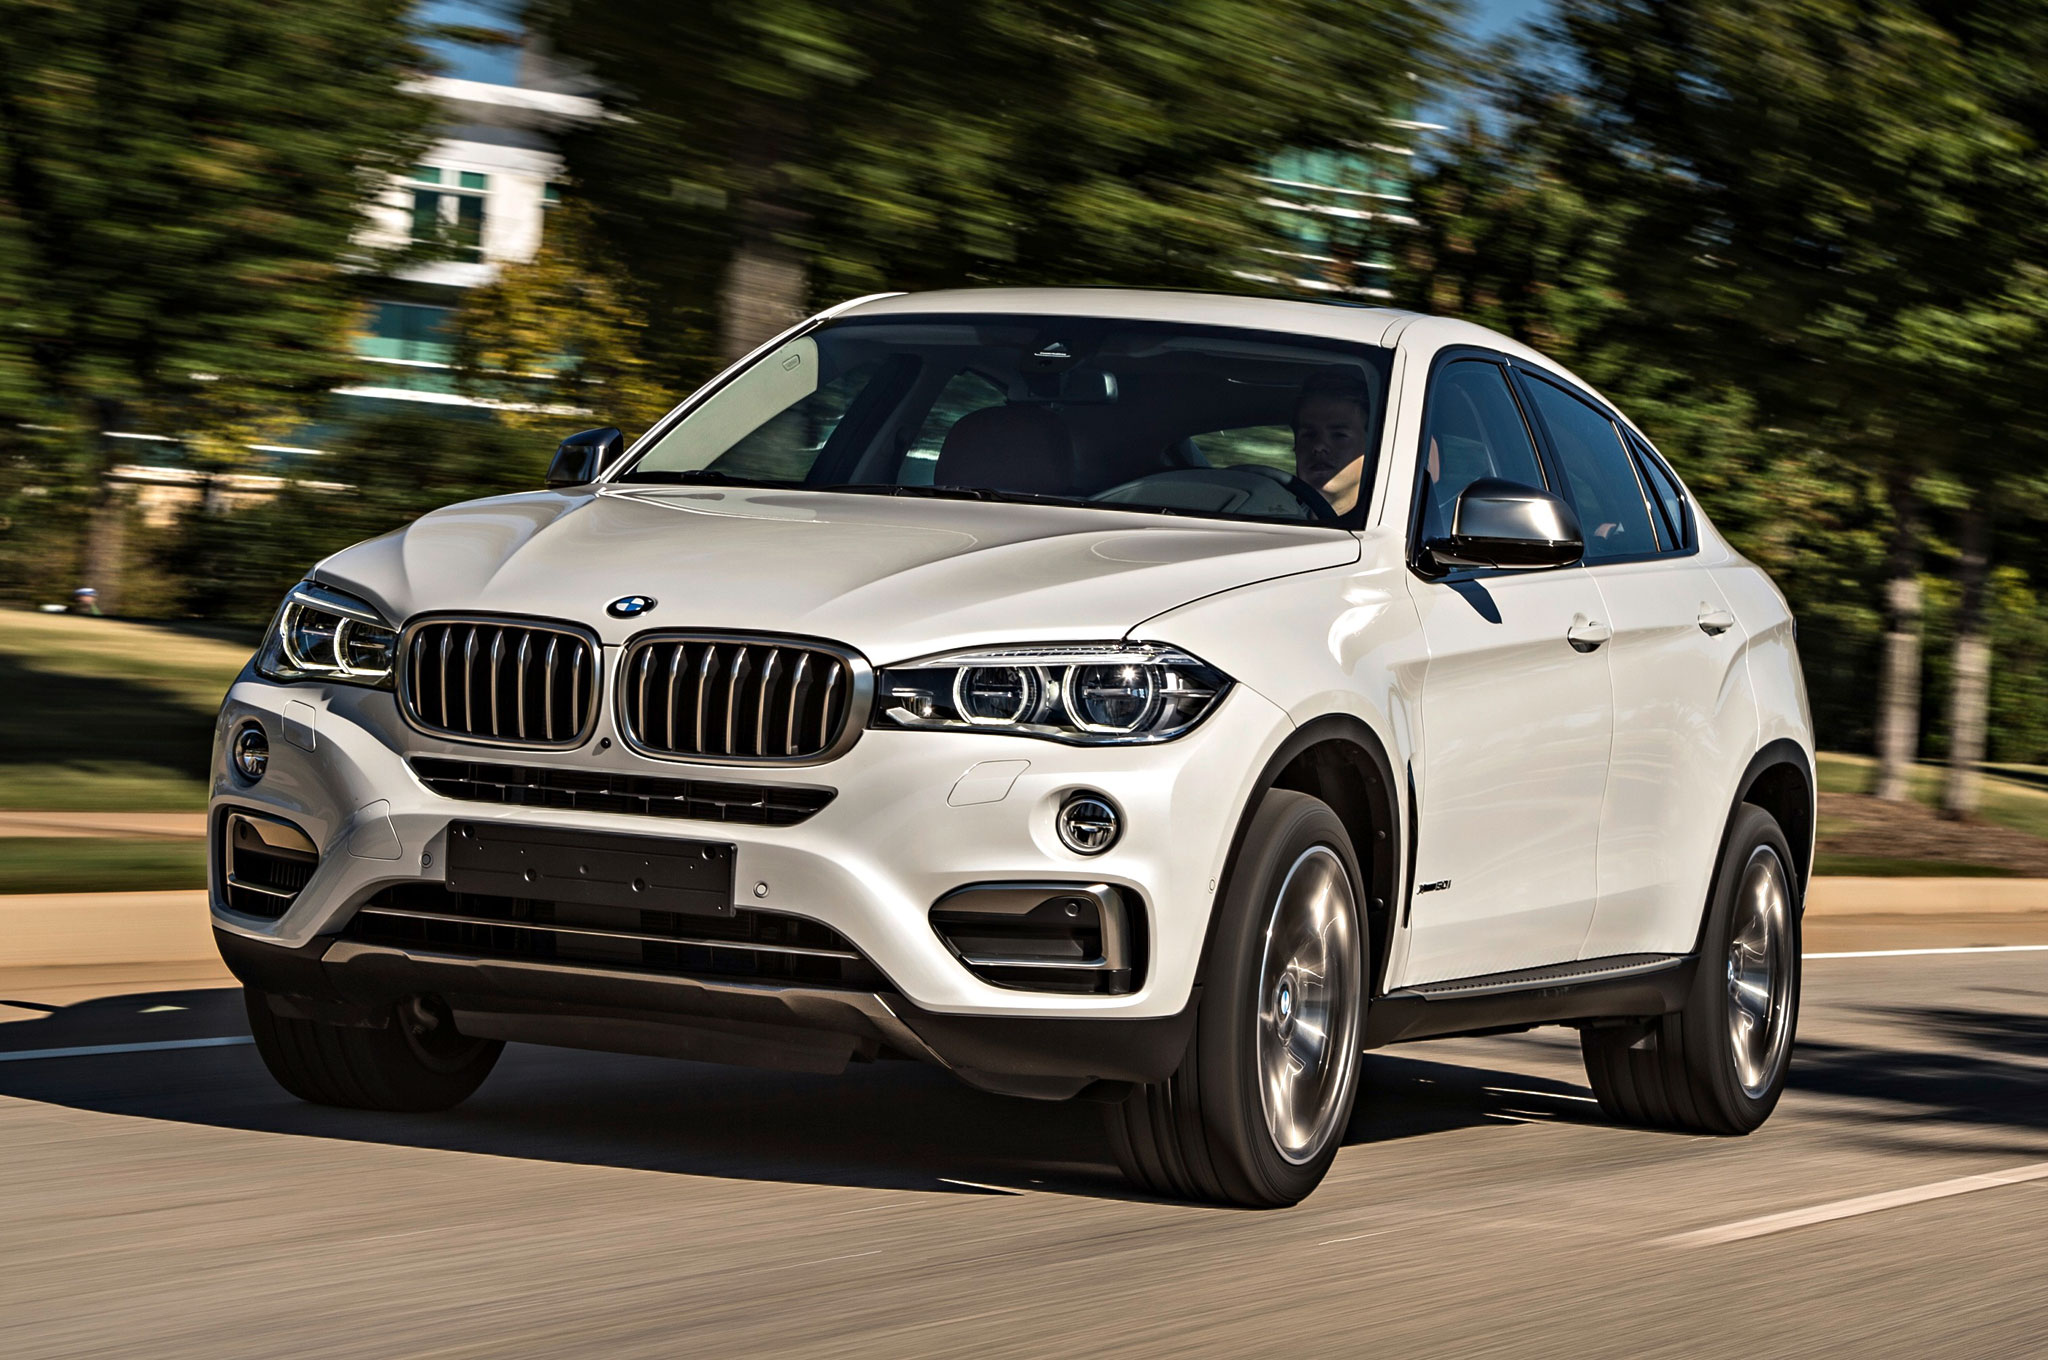 Bmw X6 M Takes On The Mercedes Amg Gle63 S Coupe On Head 2